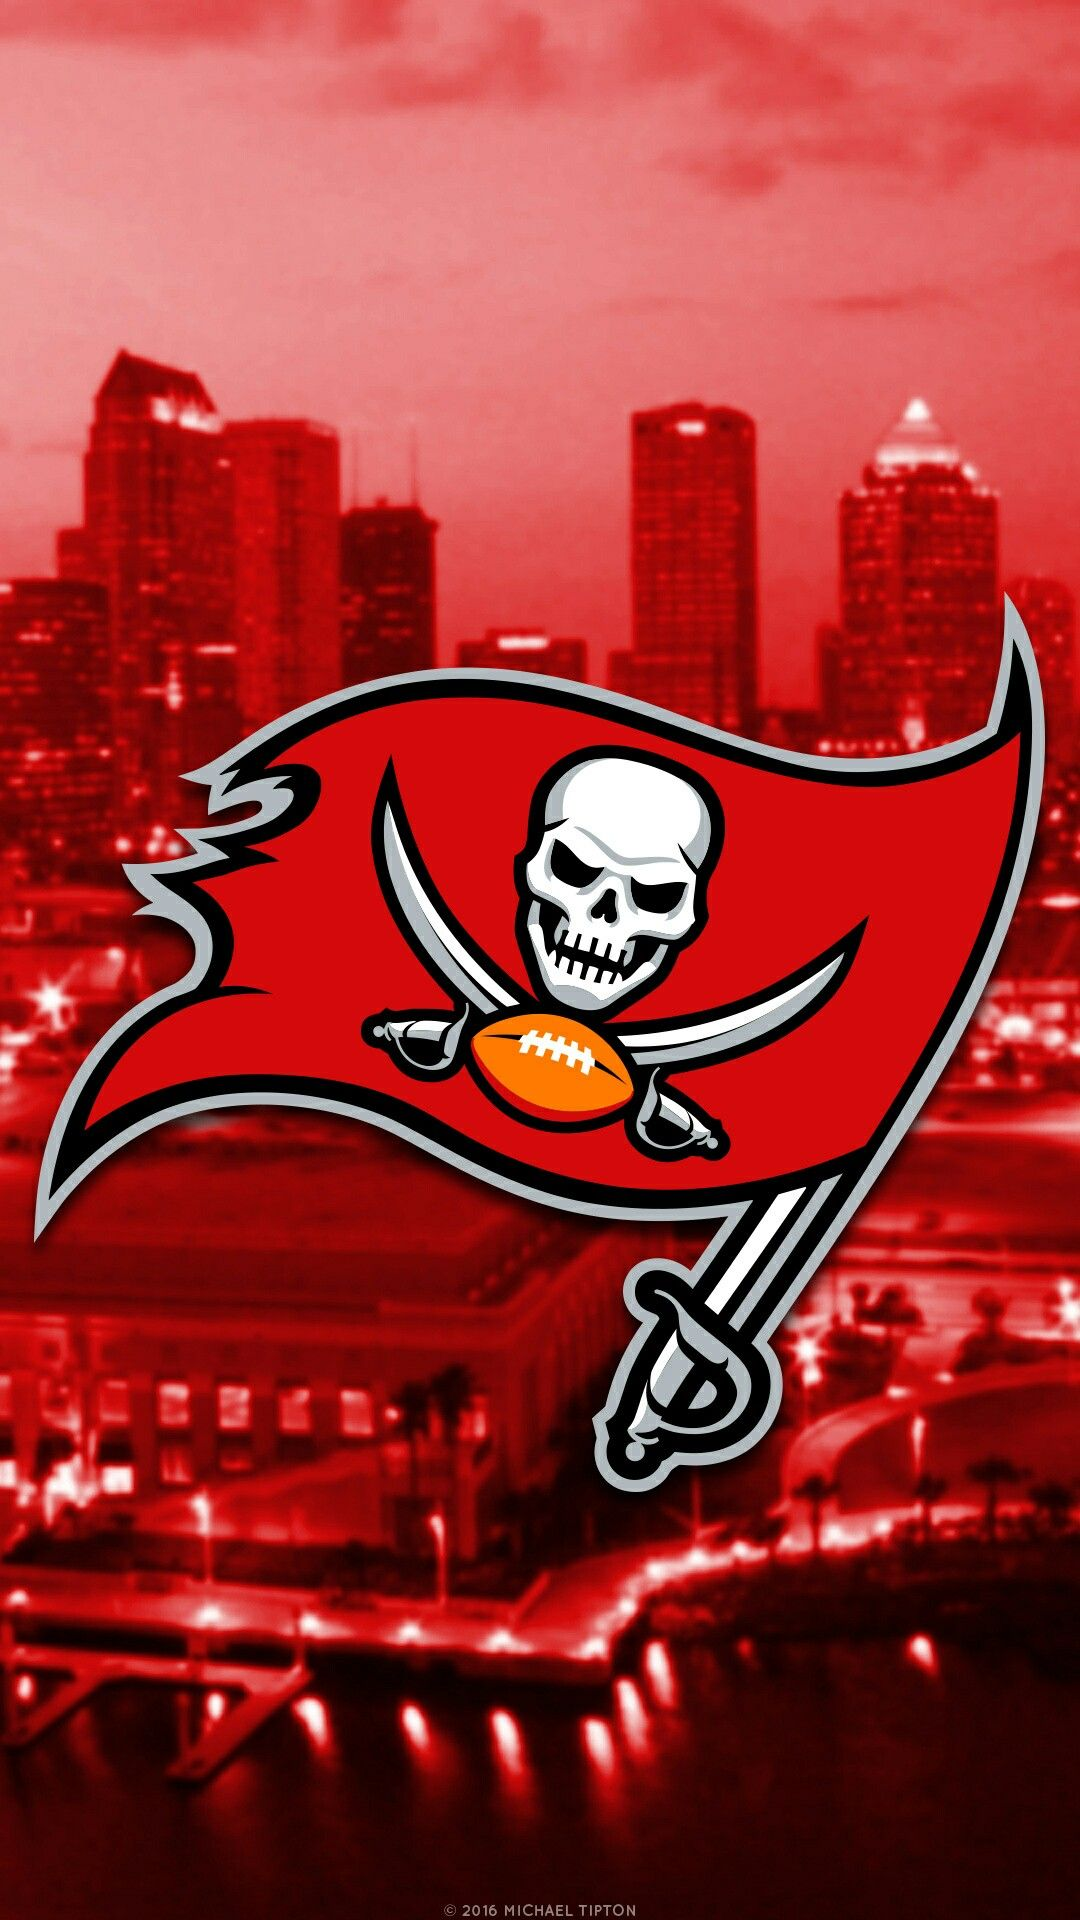 Pin By Jimmy Gimple On Tampa Bay Buccaneers Tampa Bay Buccaneers Tampa Bay Buccaneers Logo Tampa Bay Buccaneers Football